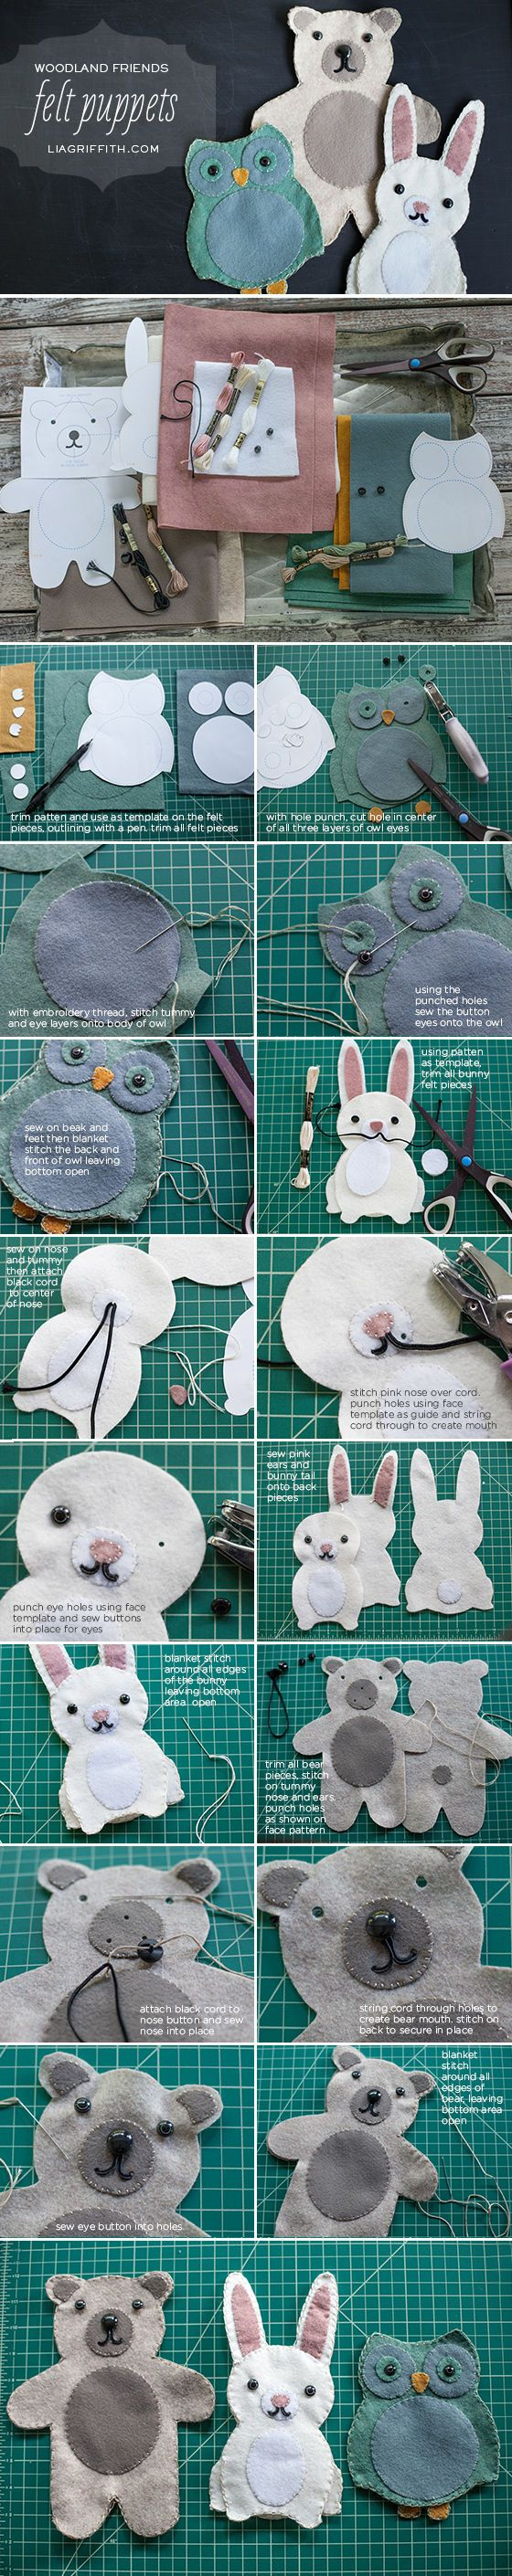 DIY Felt Puppets diy craft crafts easy crafts diy ideas diy crafts kids crafts easter crafts crafts for kids